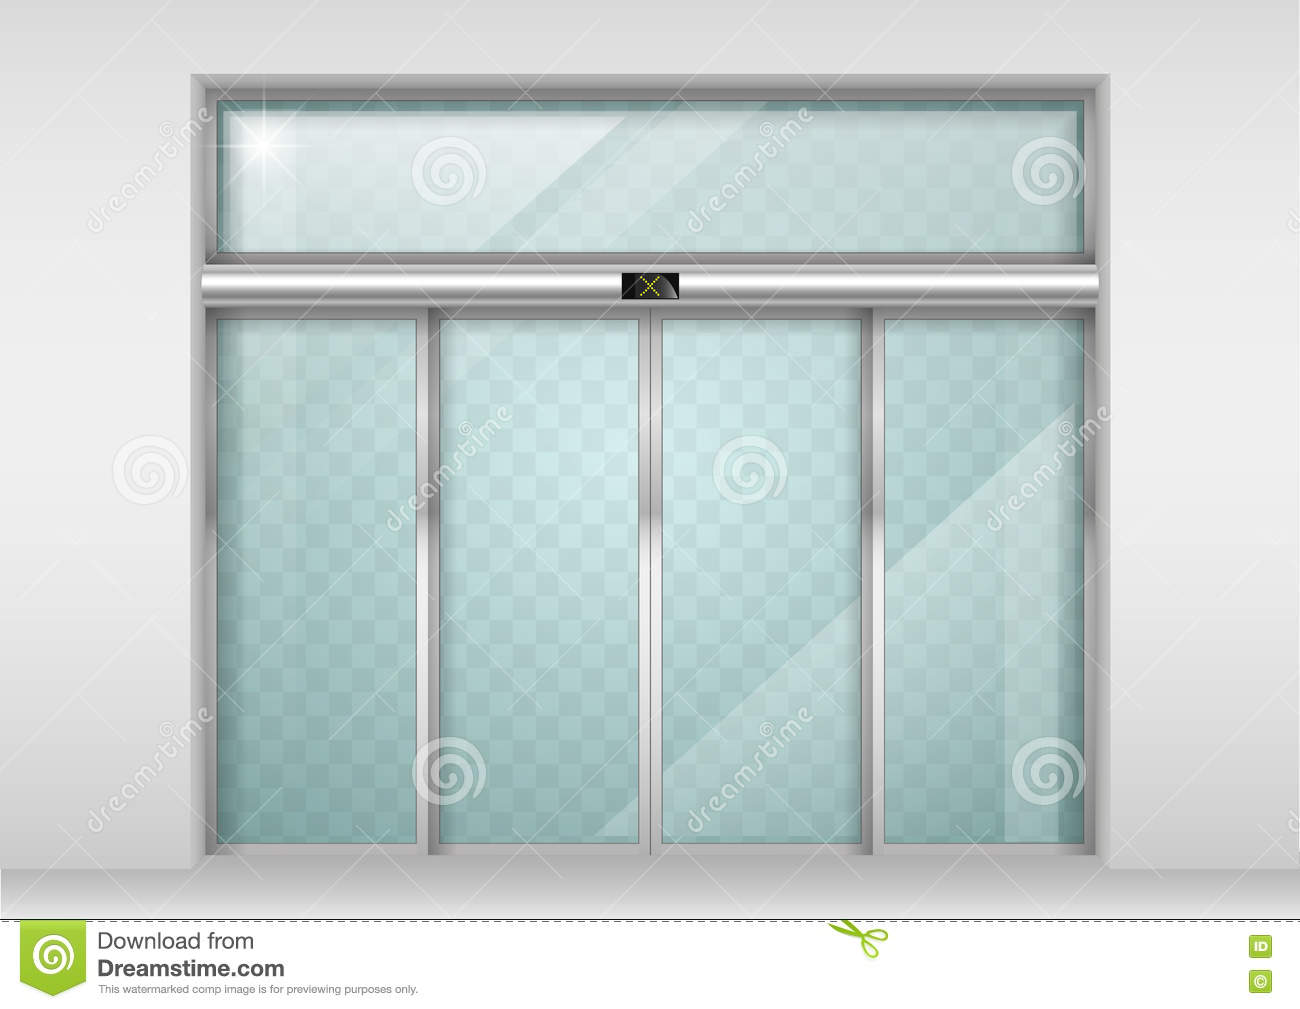 Sliding Glass Automatic Doors Stock Vector Illustration Of